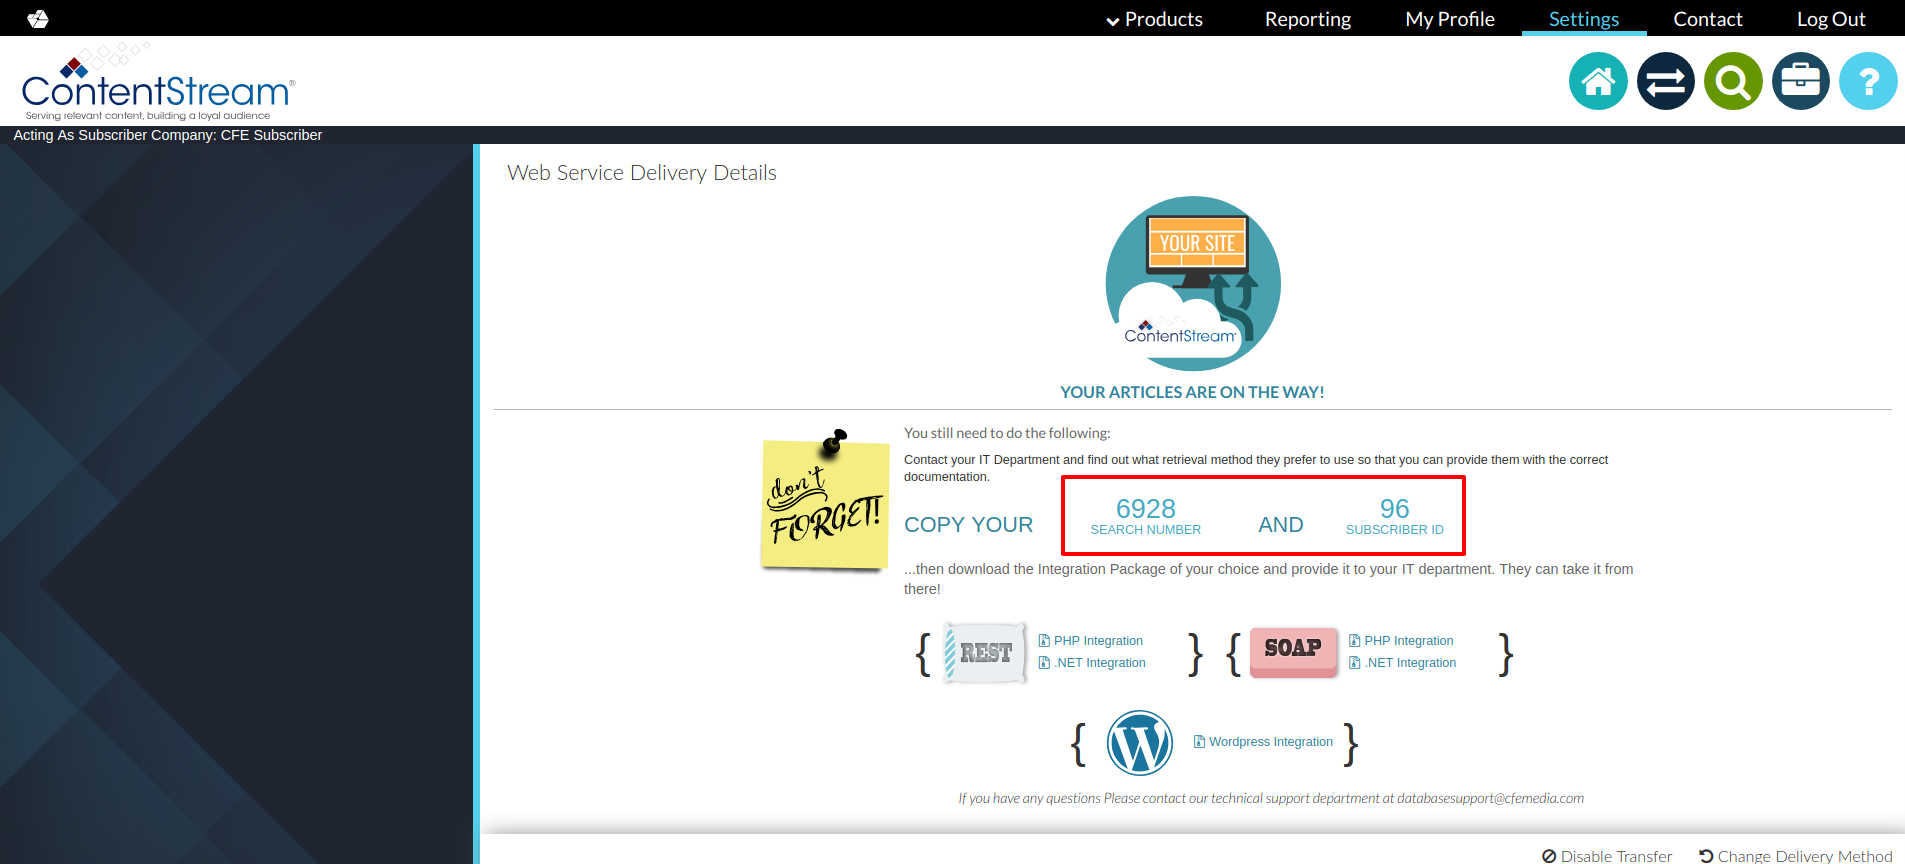 Where to find your subscriber ID and search number in ContentStream